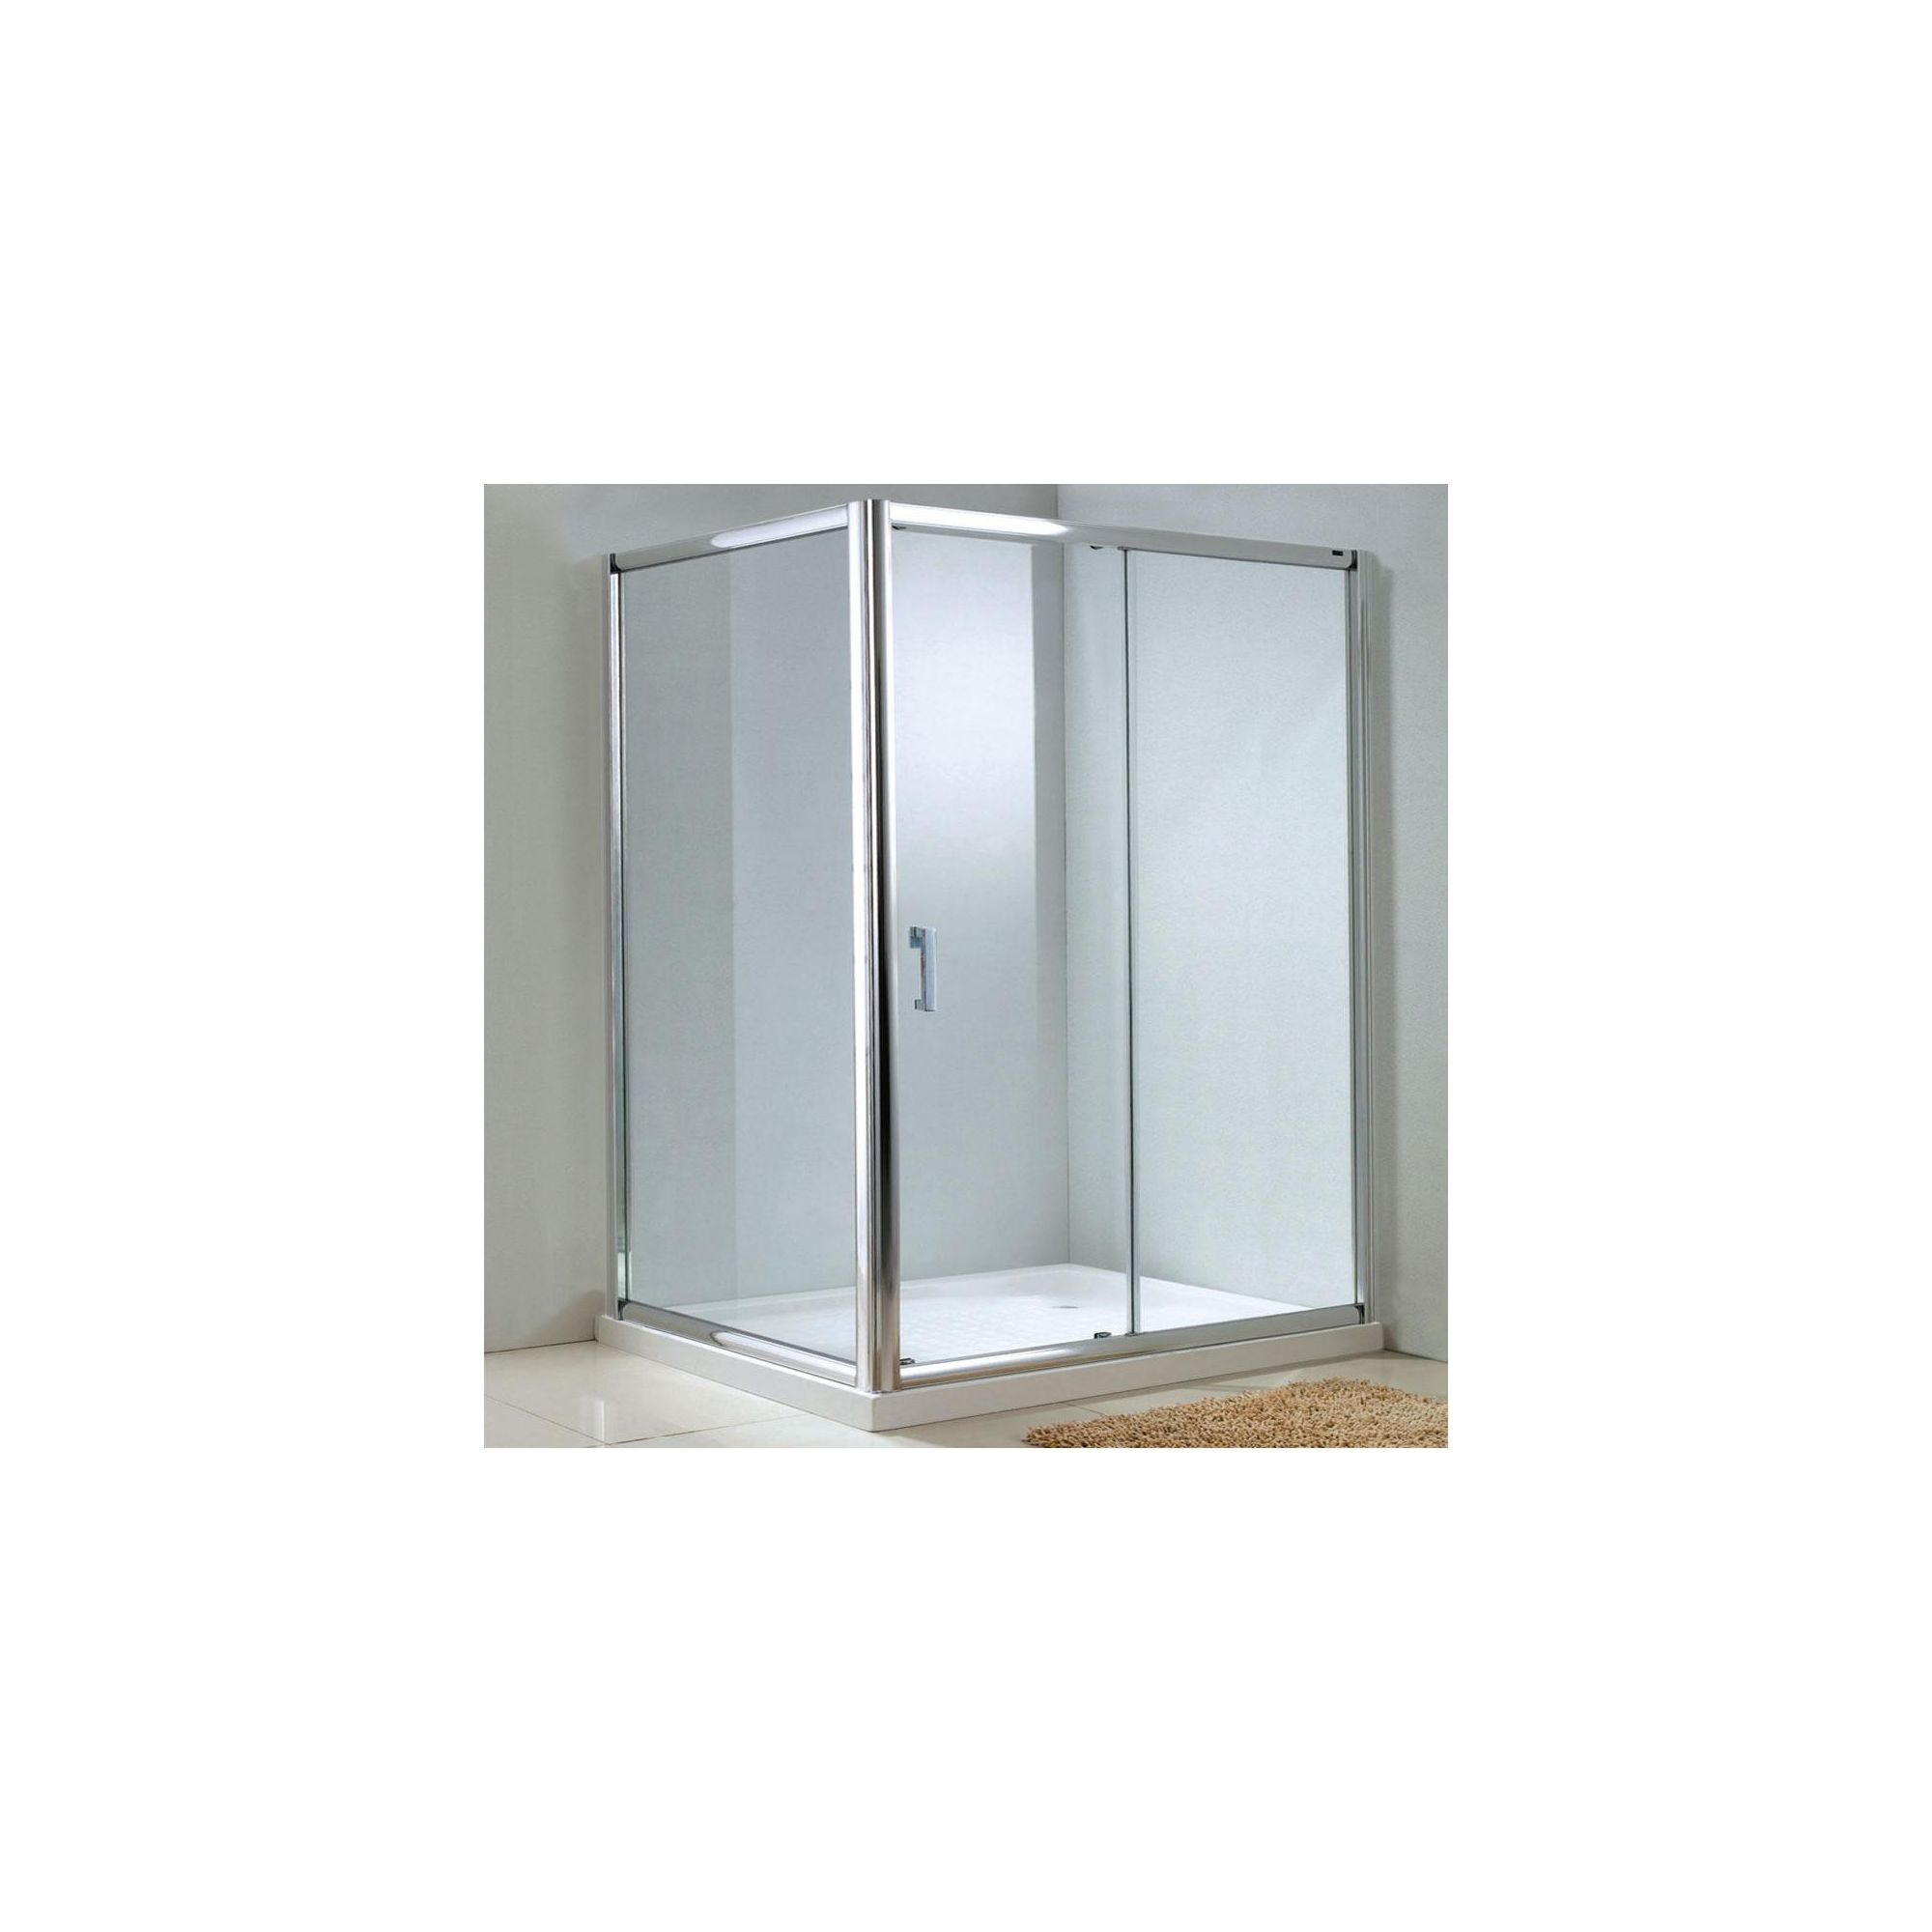 Duchy Style Single Sliding Door Shower Enclosure, 1100mm x 900mm, 6mm Glass, Low Profile Tray at Tescos Direct